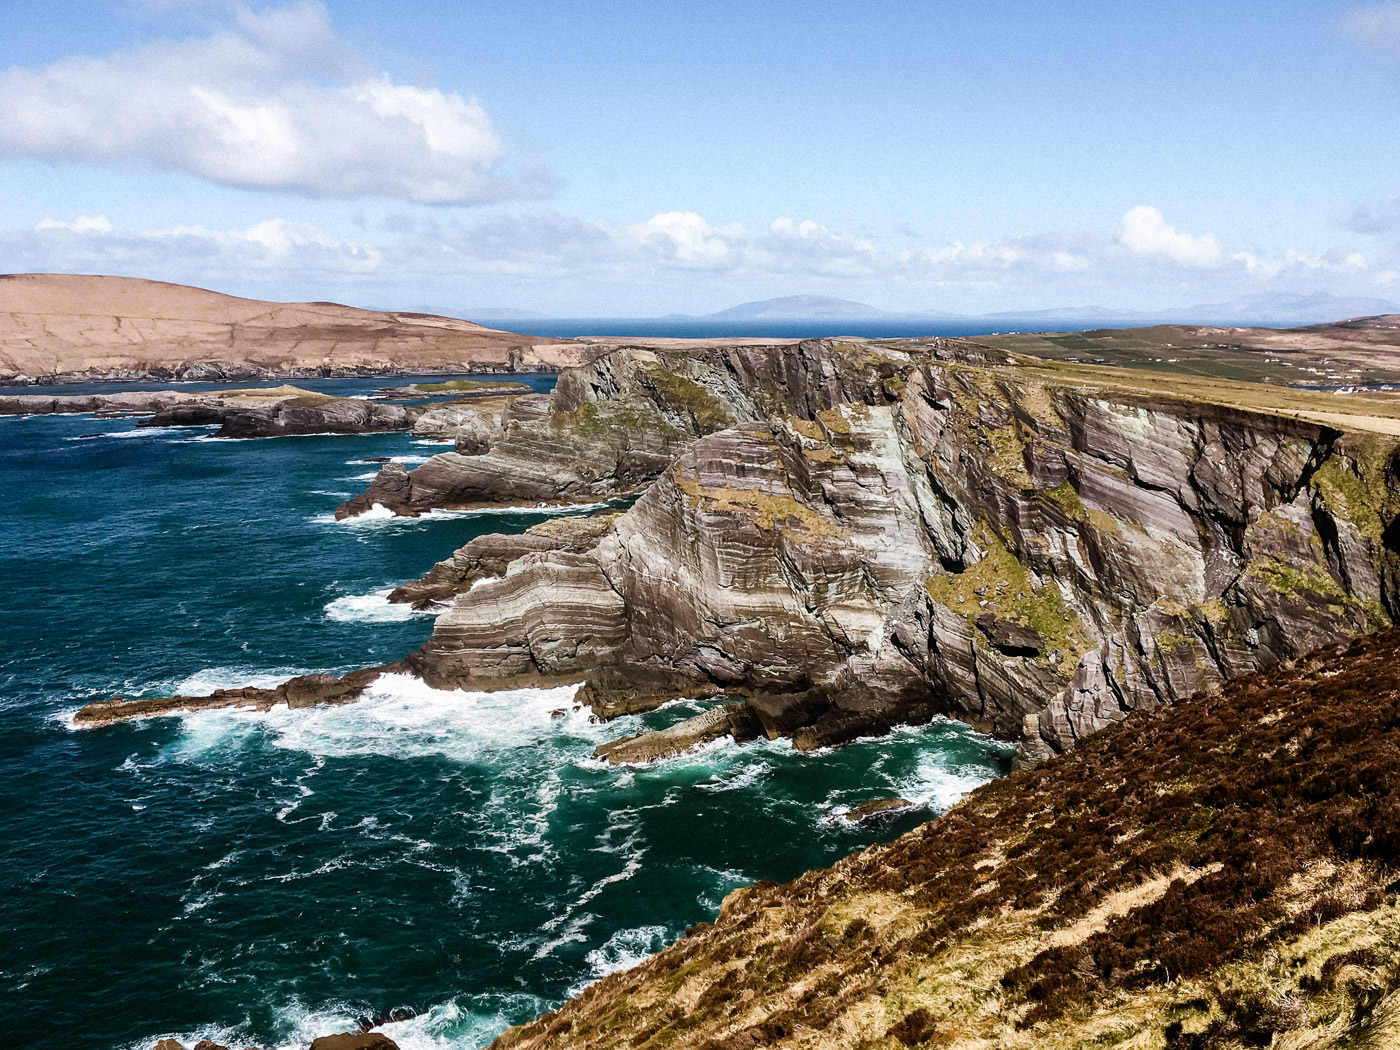 Irlandtrip im März 2018 - Cliffs of Kerry